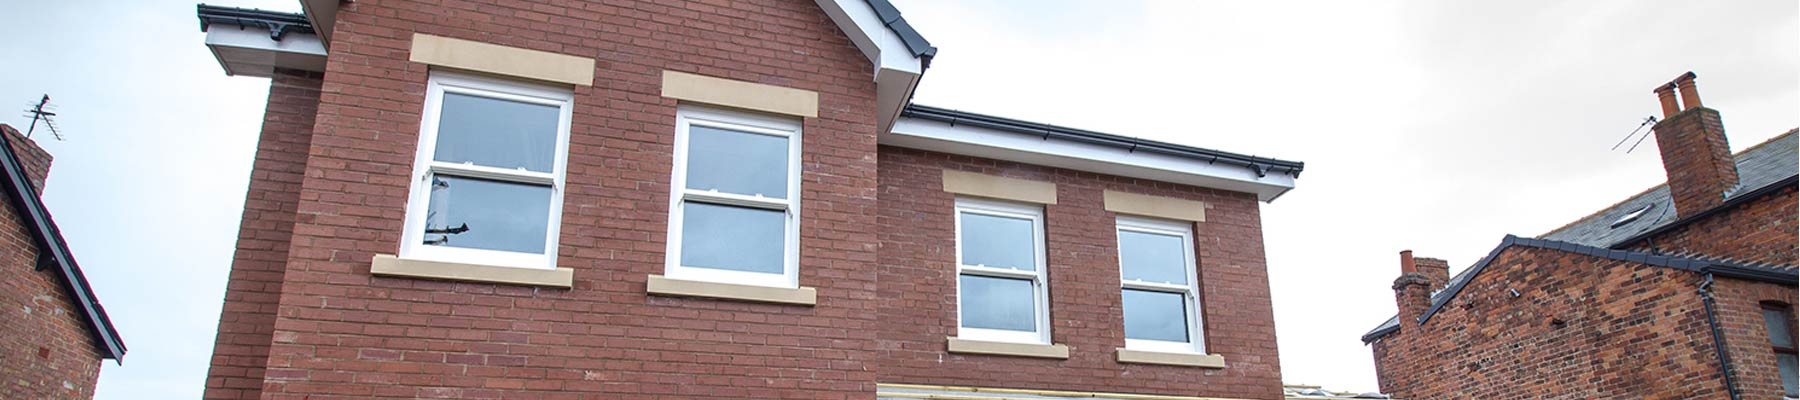 Installation of UPVC sash windows.